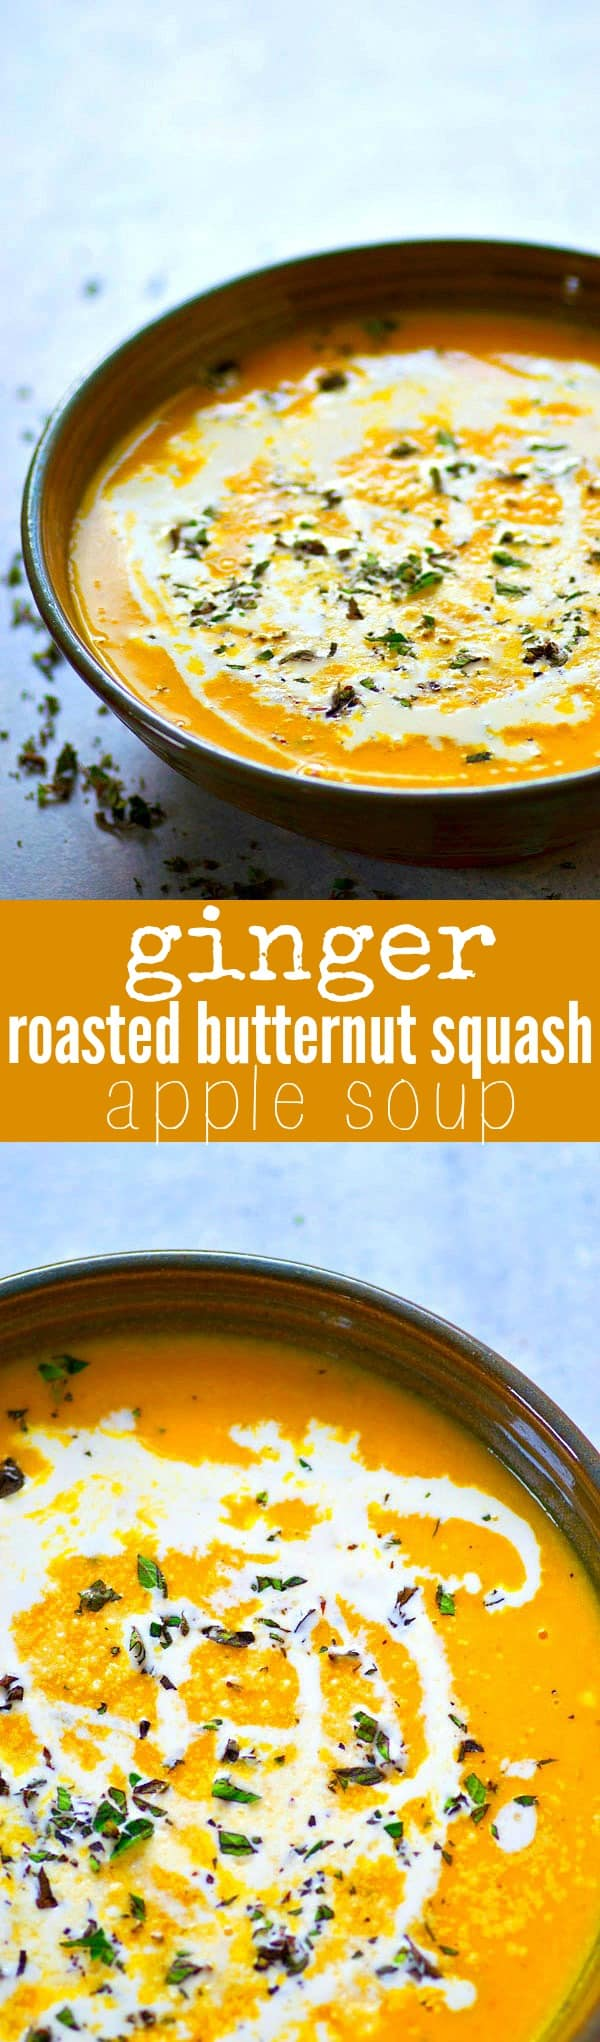 Smooth and creamy ginger-roasted butternut squash apple soup is the ultimate soup combo of fall flavors! Simple to make and you'll be filling bowl after bowl!